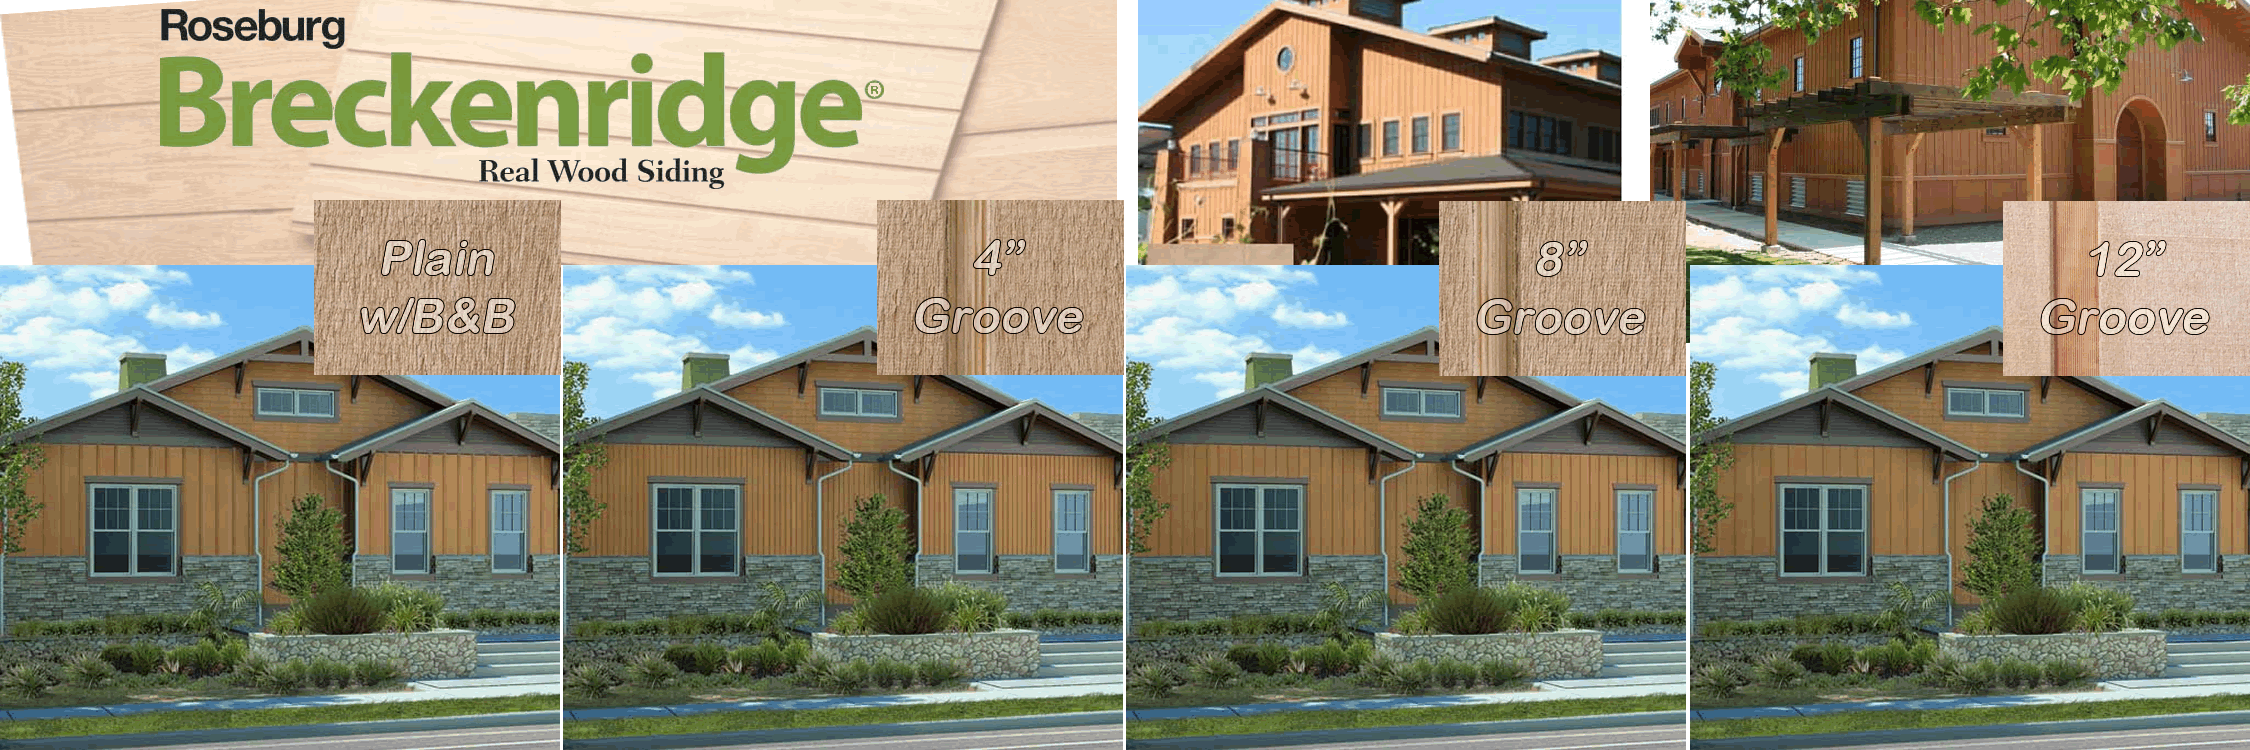 example images of roseburg breckenrigde plywood siding